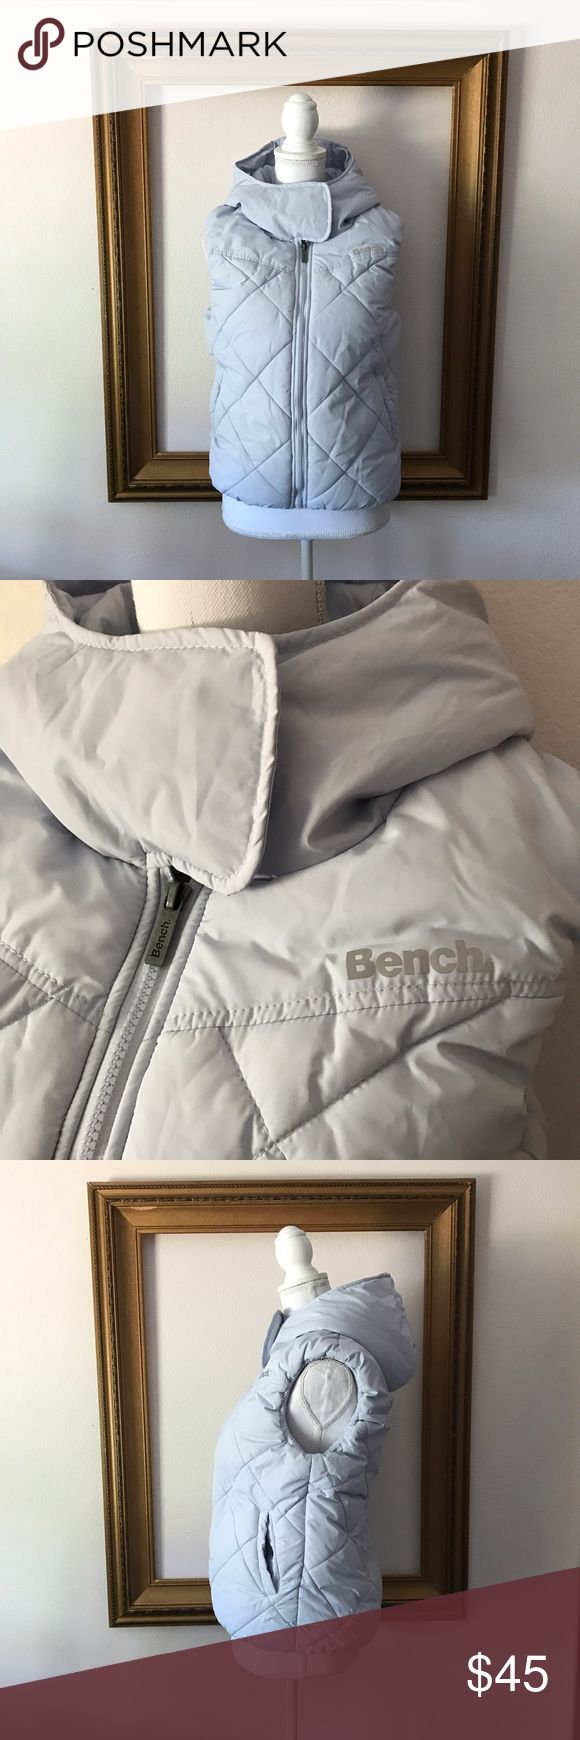 Bench light blue insulated puffy hooded vest, L In good used condition. Small dirt stain above logo on back right. 20 inches armpit to armpit. 24 inches shoulder to bottom of vest. Bench Jackets & Coats Vests